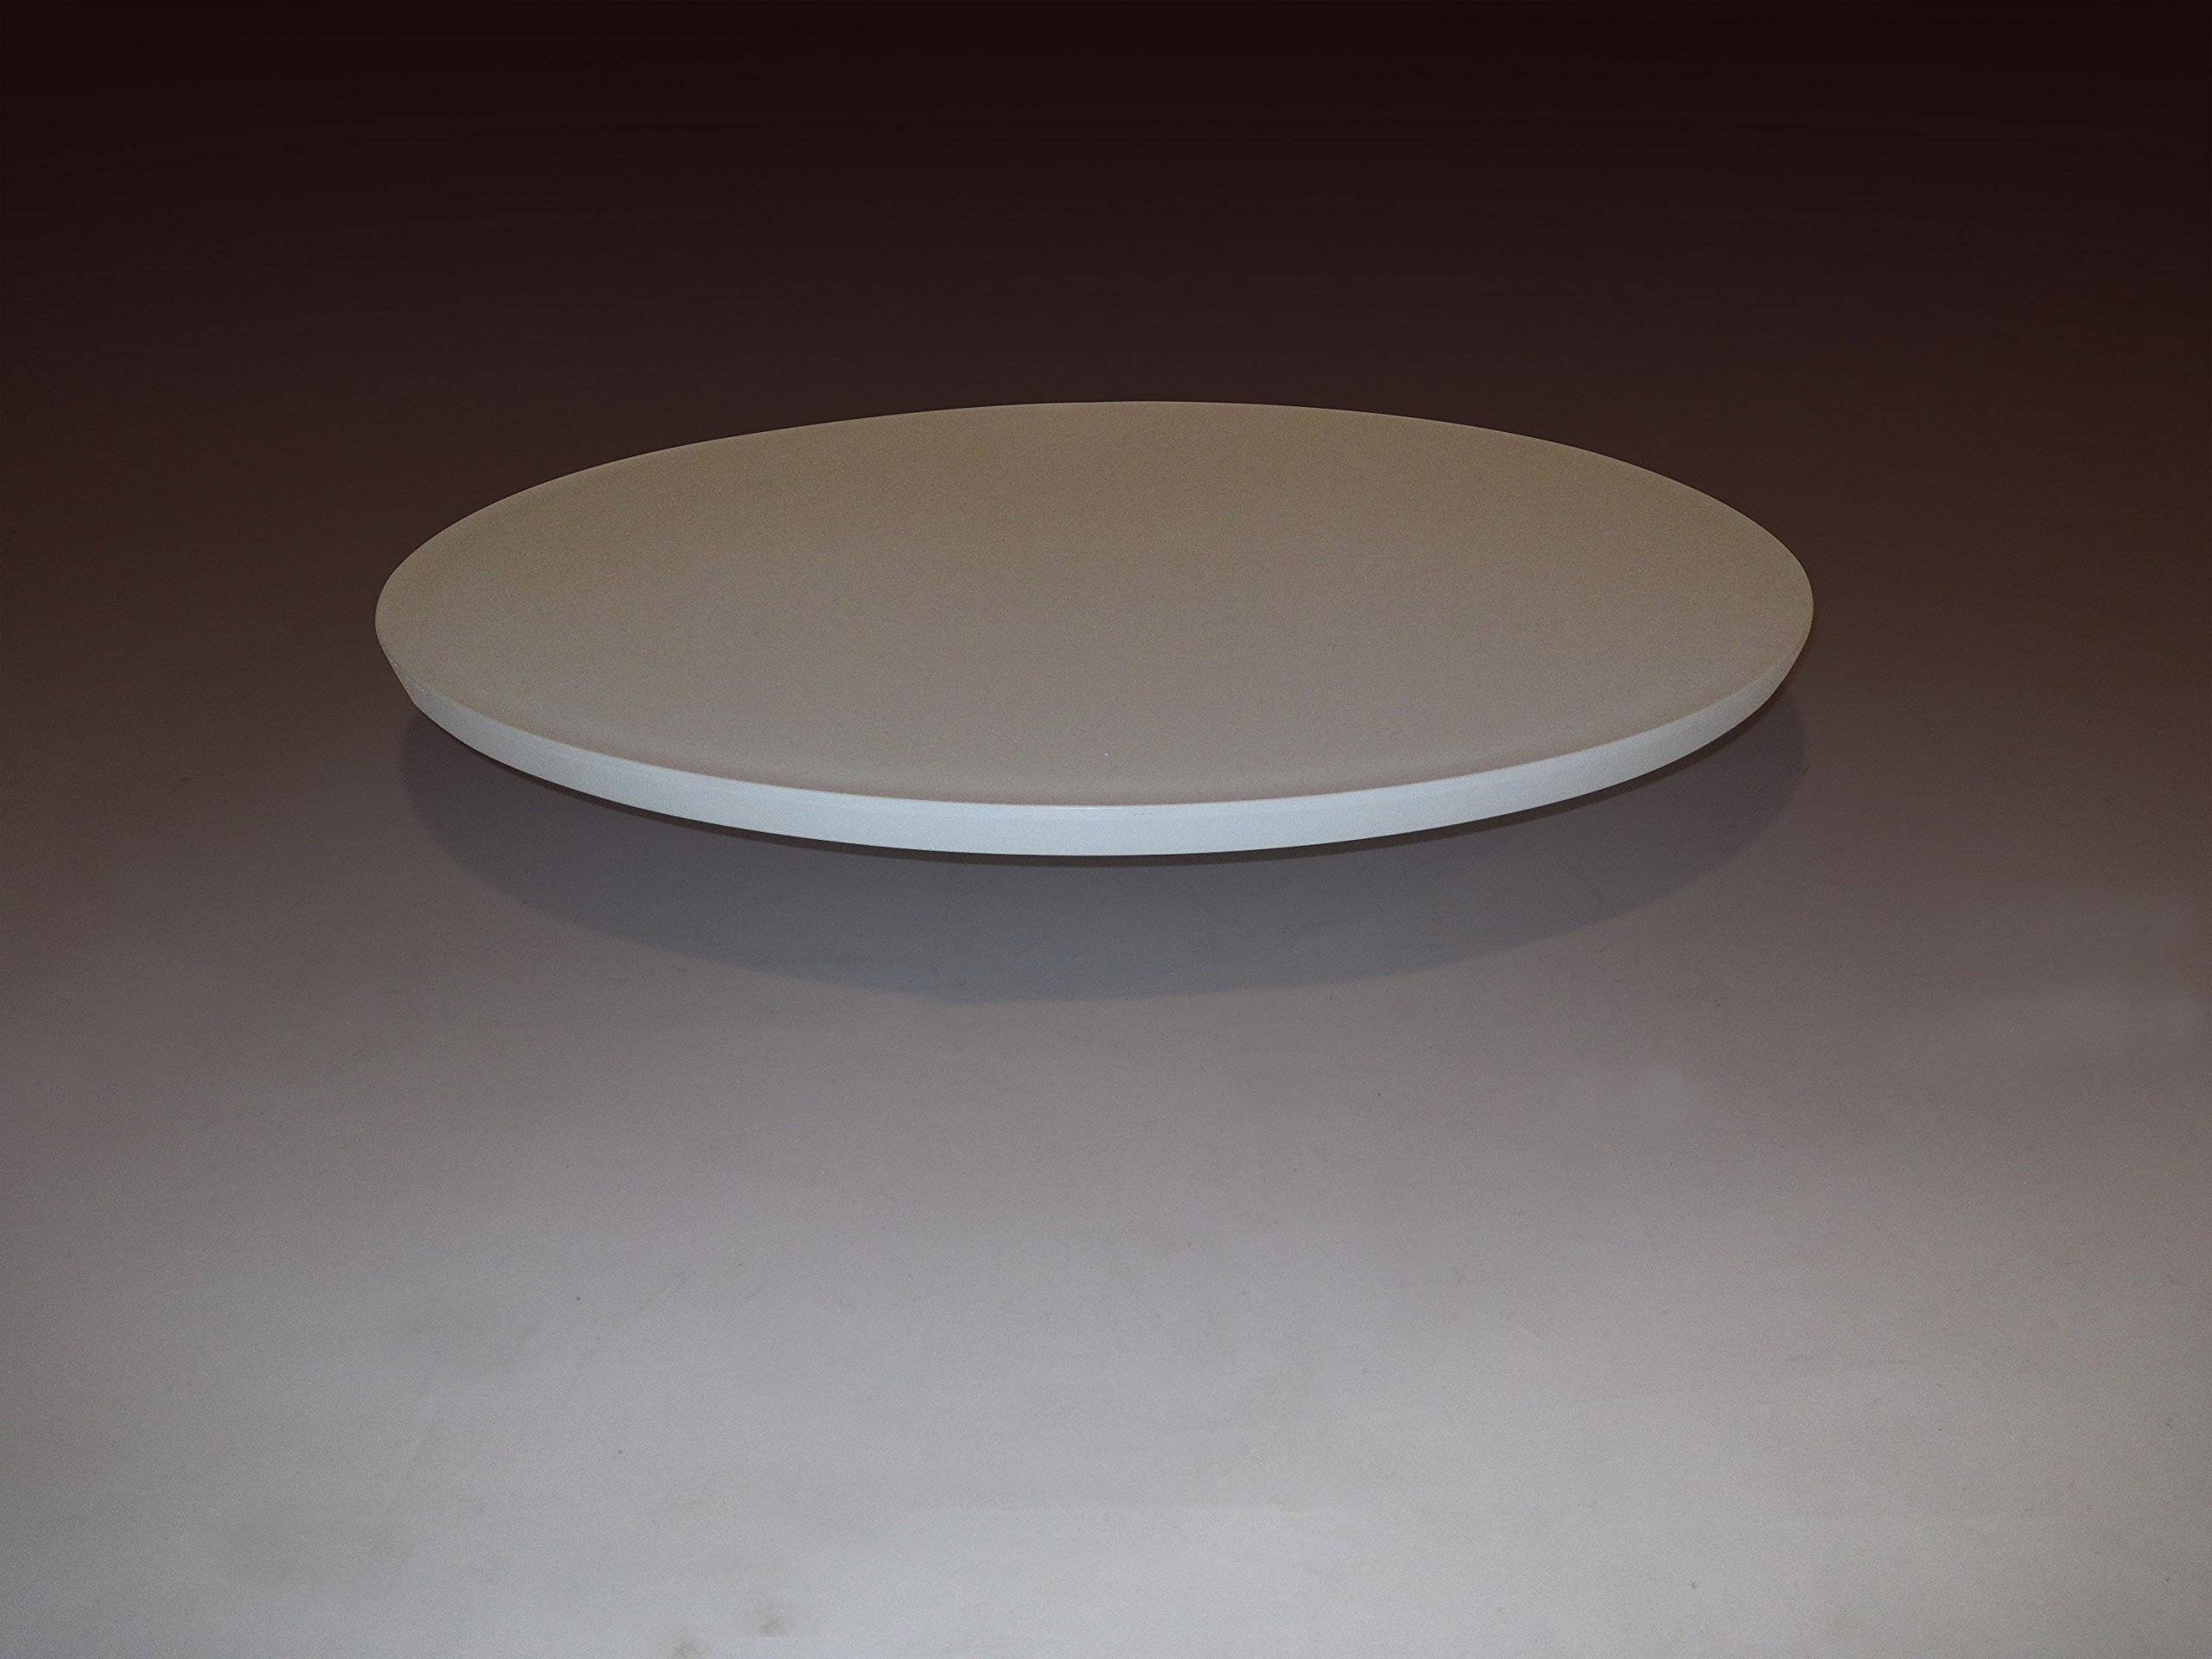 24'' round commercial grade table top, outdoor/indoor, technopolymer fiberglass reinforced, for restaurant and catering - can be adapted to most leg systems. Heavy Duty